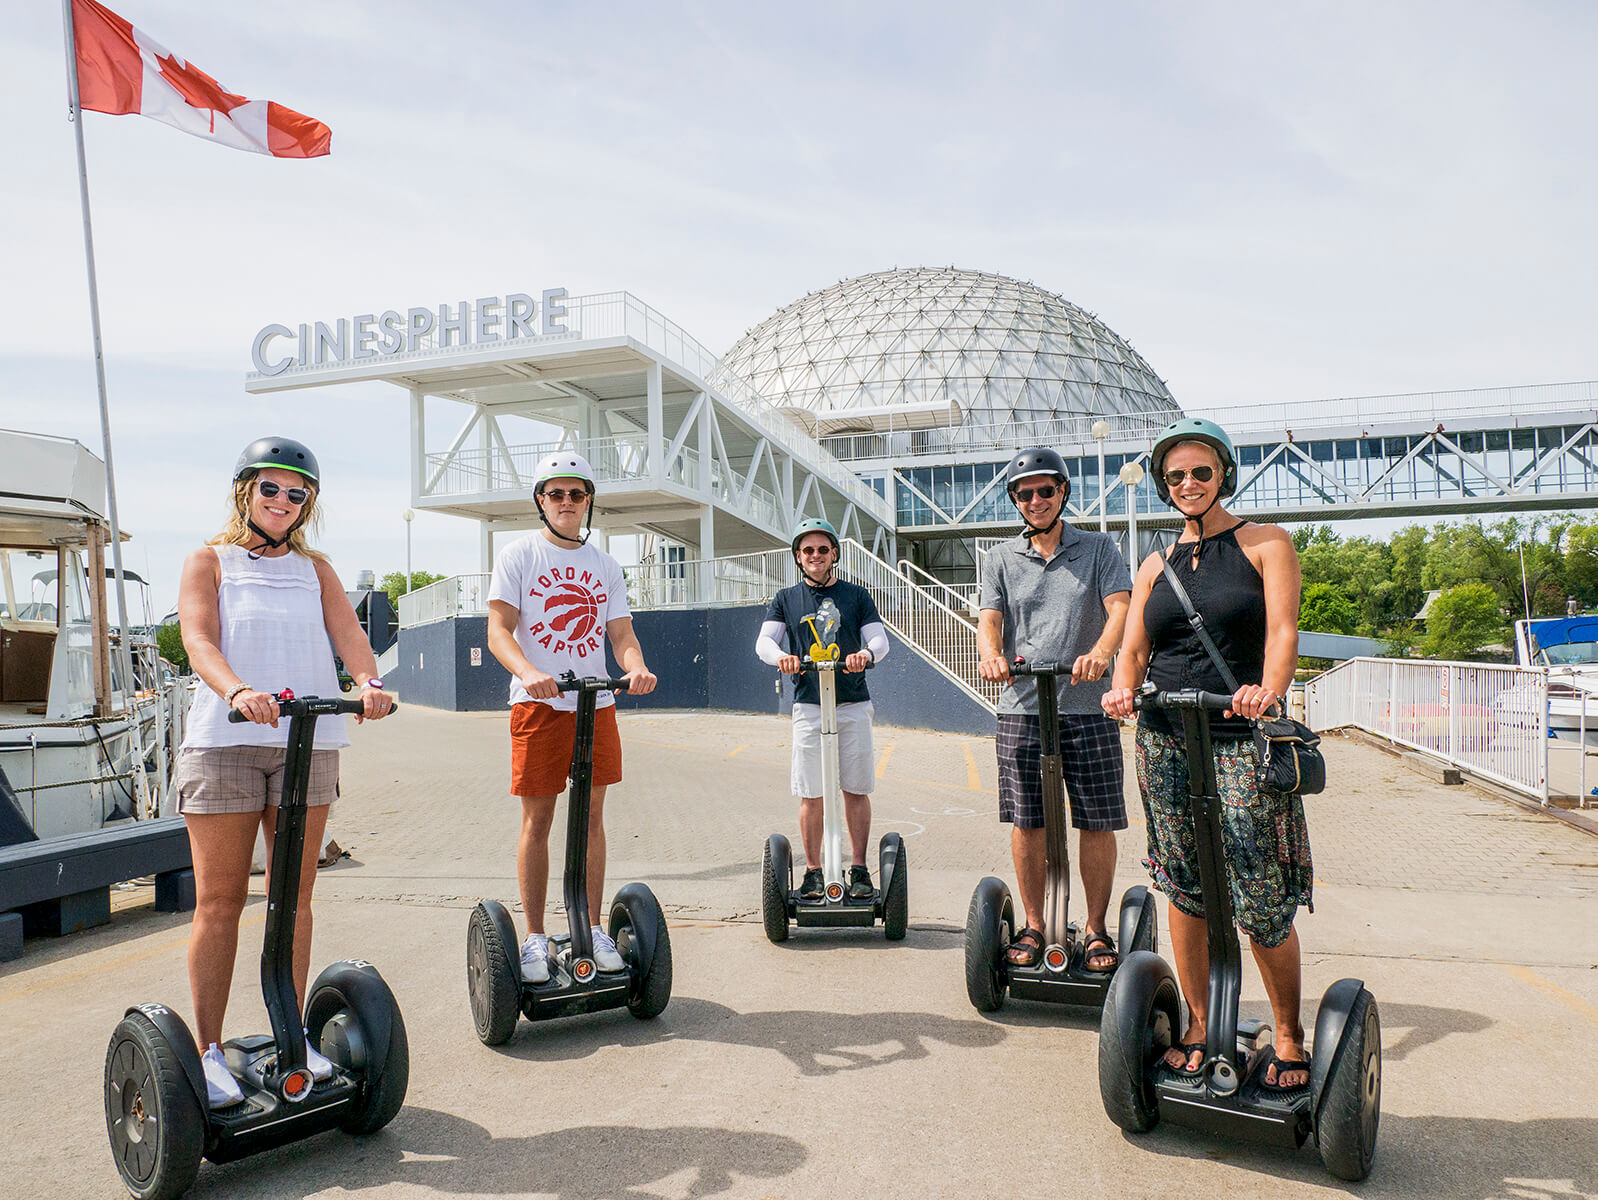 The Go Tours Canada Ontario Place Segway Tour is an incredible experience. Explore the Cinesphere and surrounding Ontario Place grounds on the fun and easy to learn Segway!